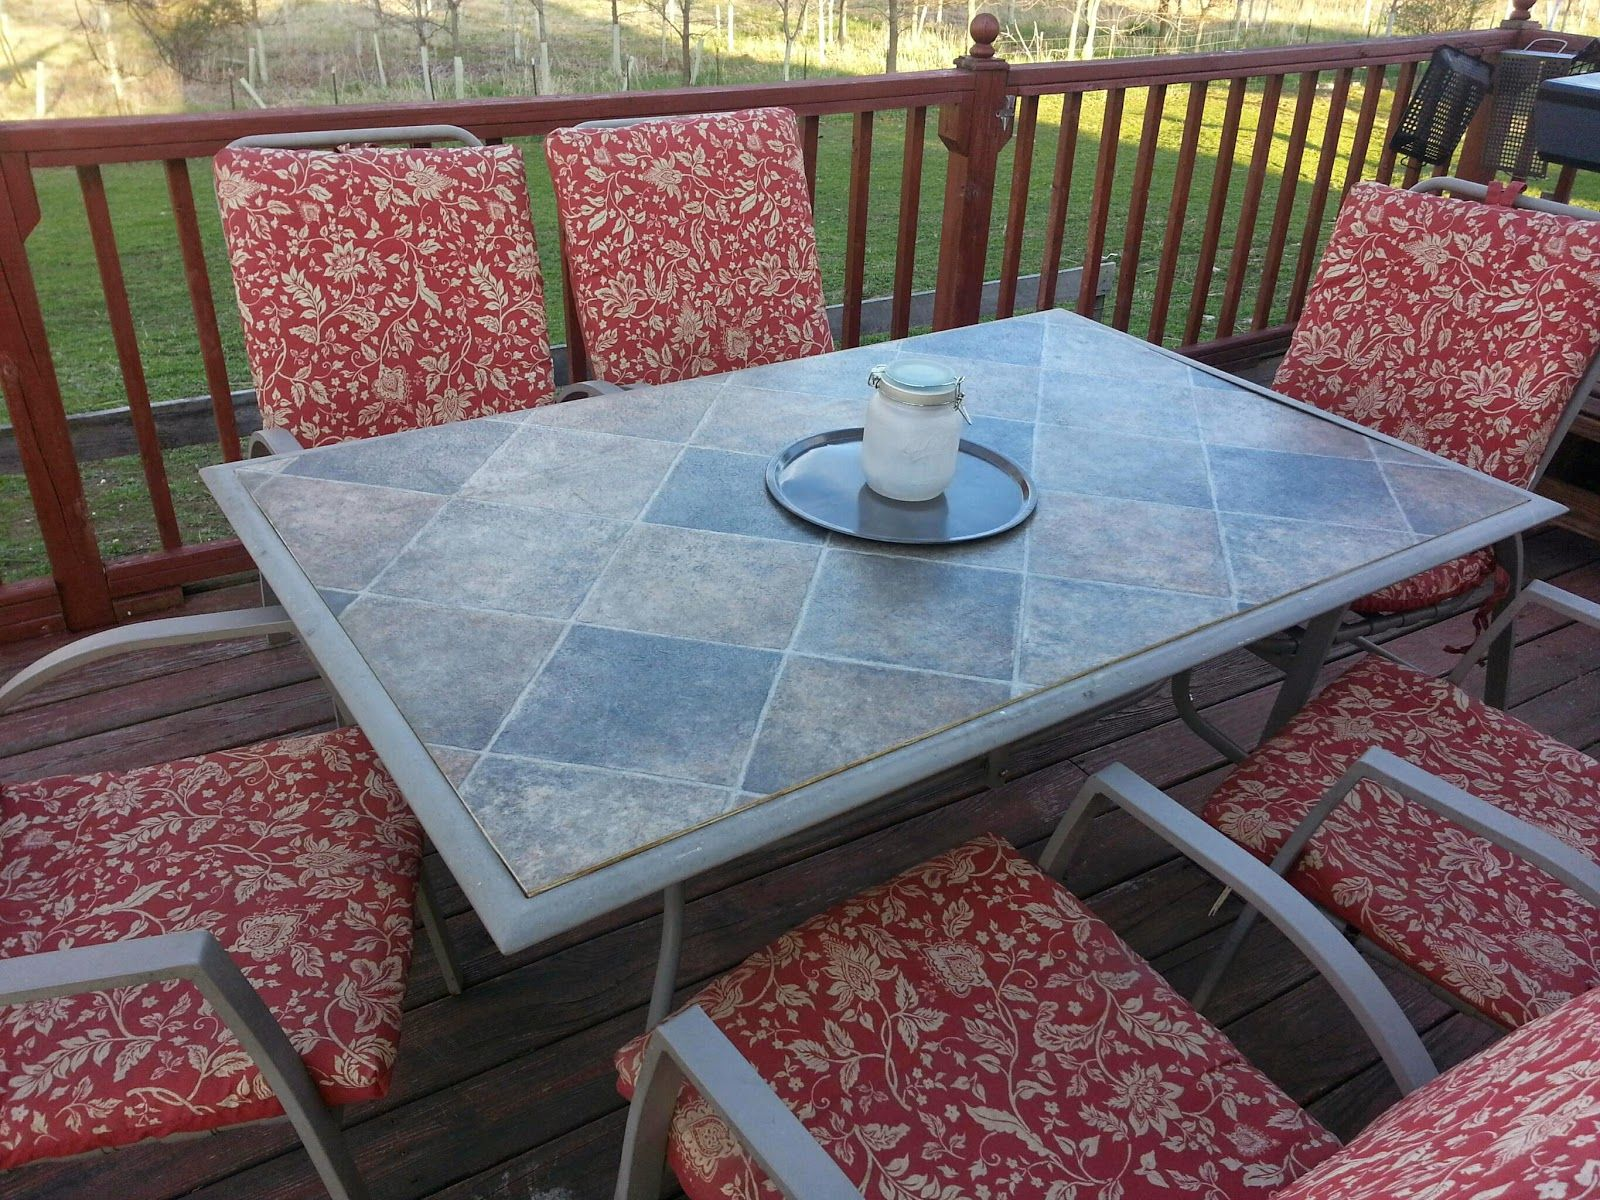 Replacing The Broken Glass On Our Patio Table With A Linoleum Remnant Plywood